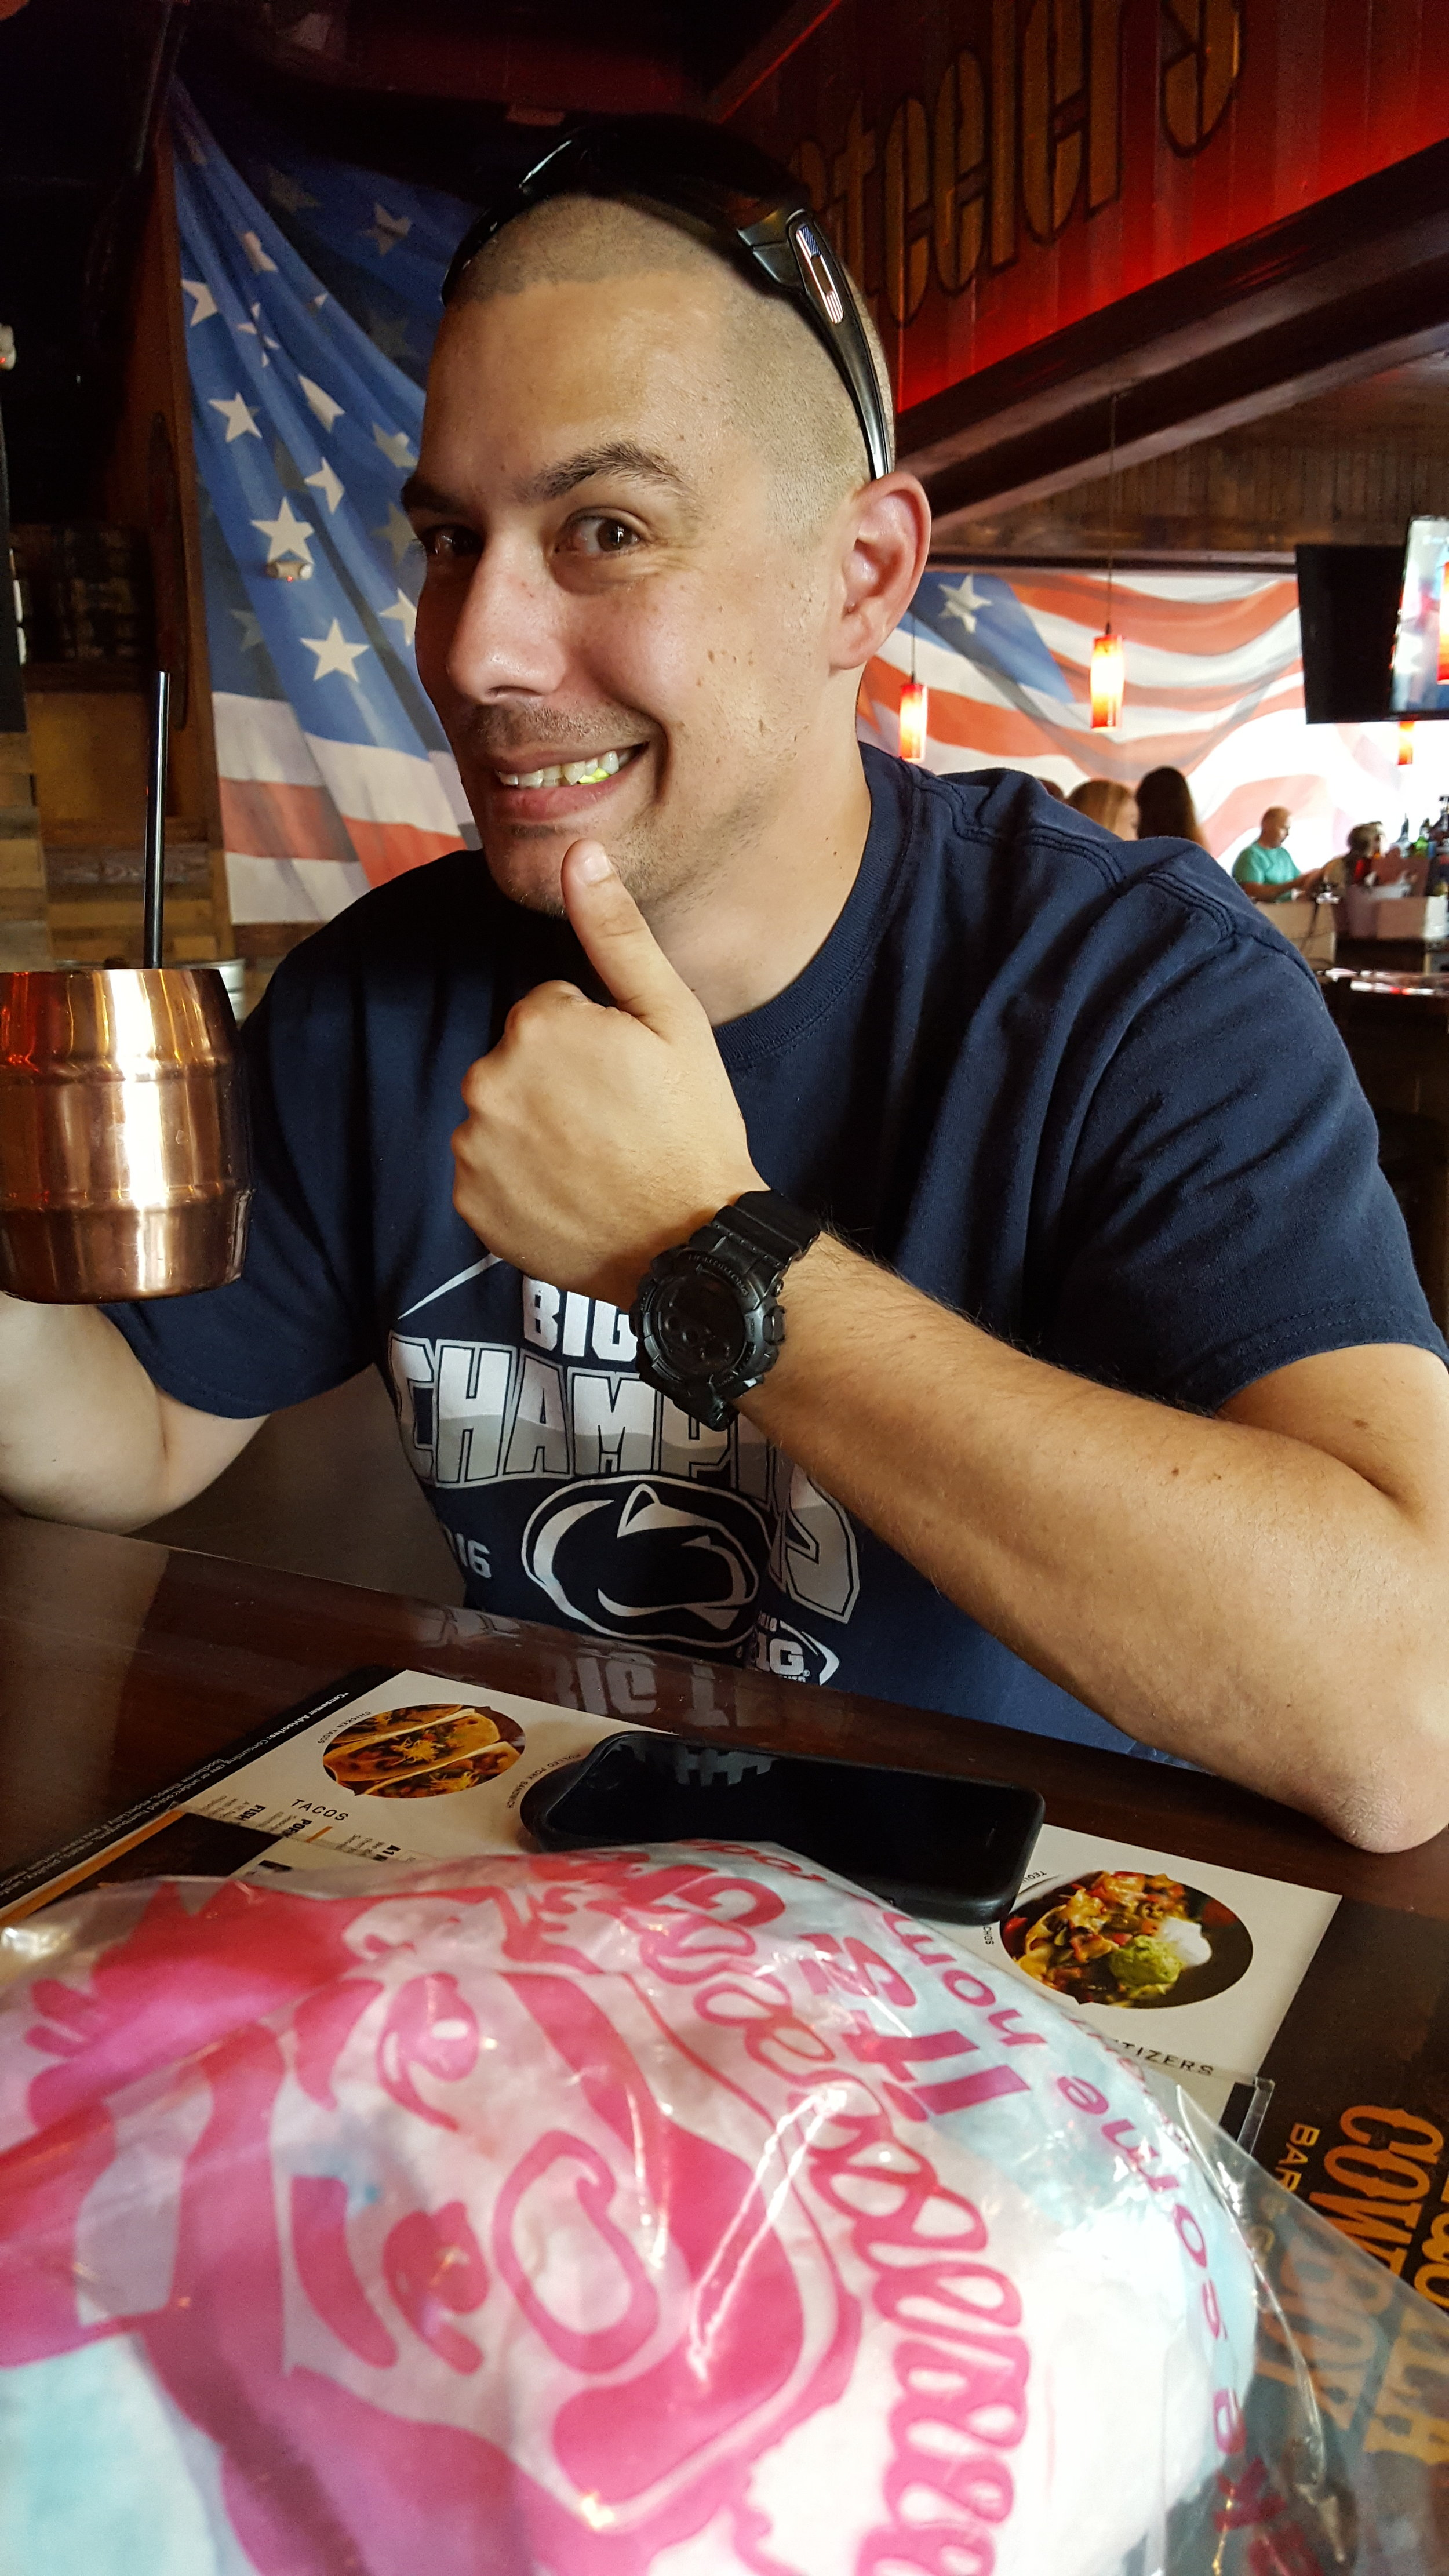 Charlie-downtown-Pittsburgh-Moscow-Mule.jpg